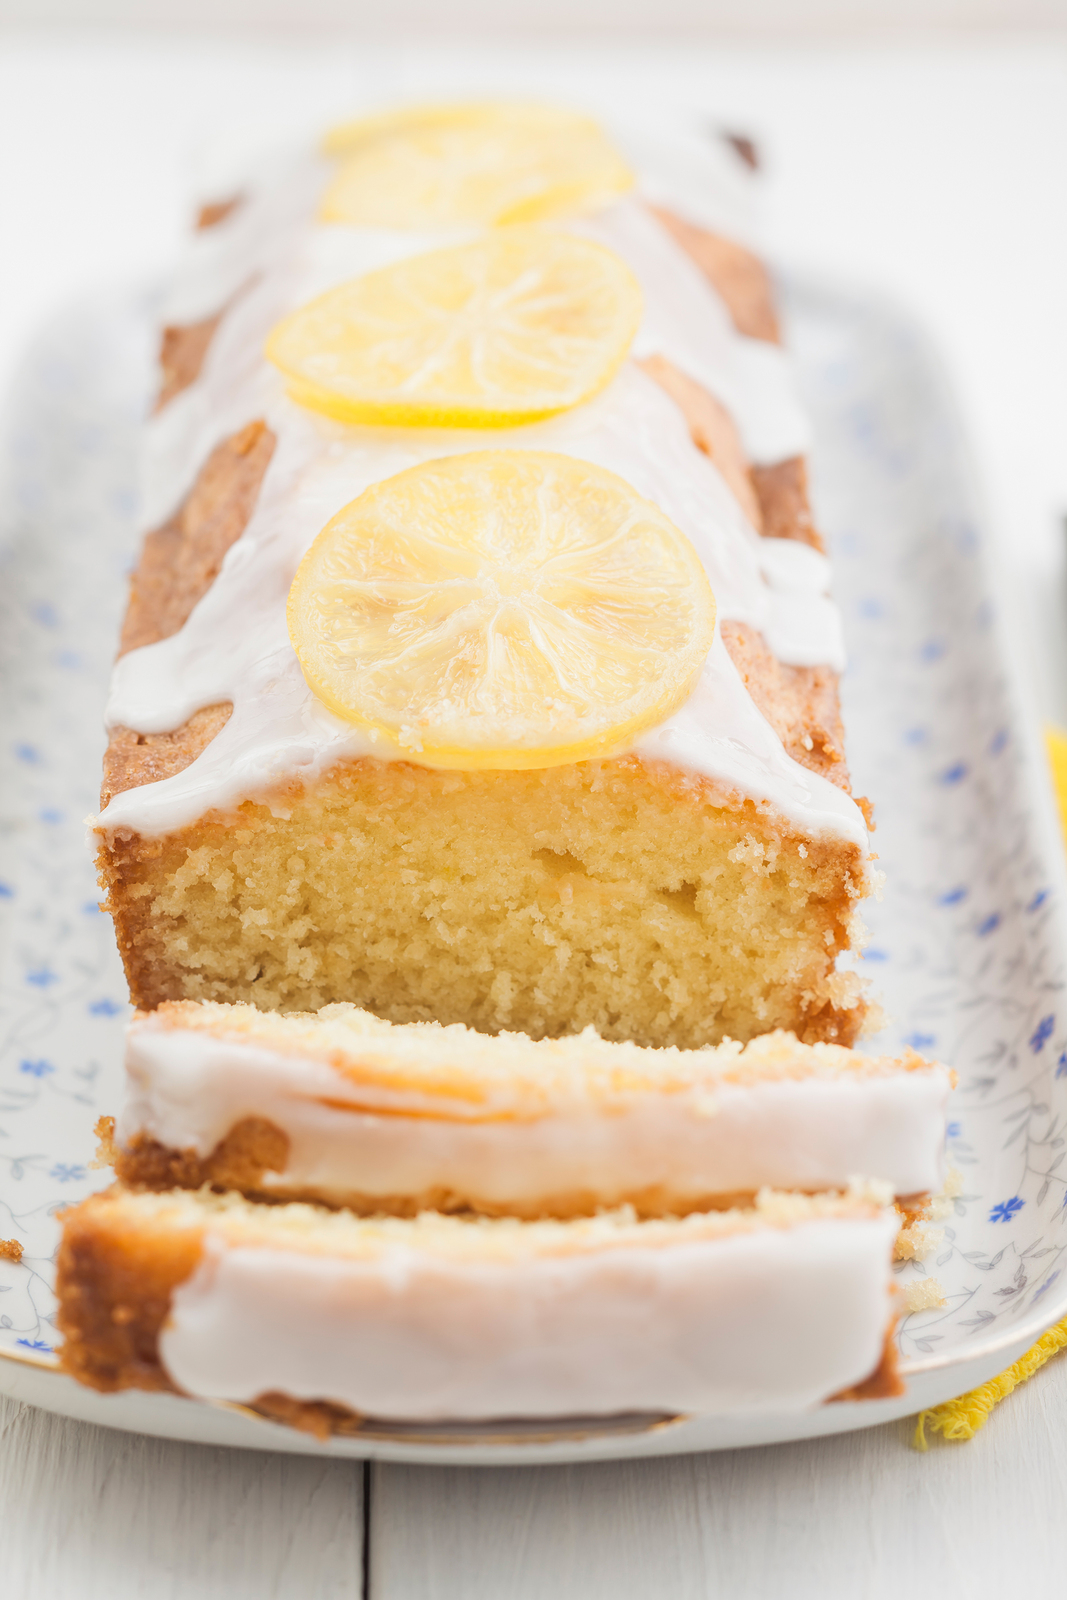 Starbucks Lemon Iced Cake Copycat Recipe. This is a delicious lemon pound cake recipe.